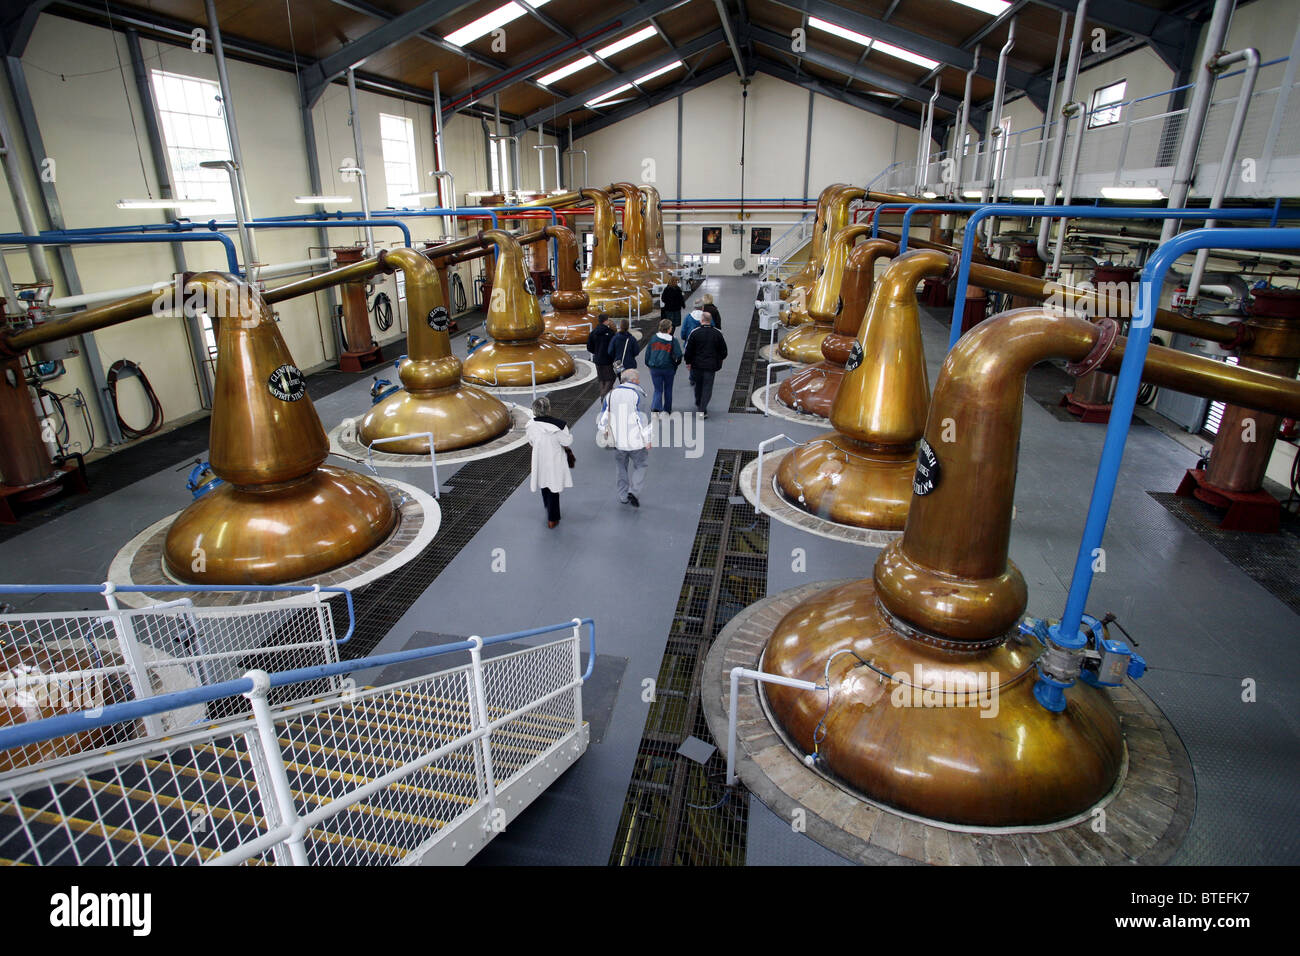 Guided Tour, The Glenfiddich Distillery, Dufftown, Keith, Banffshire, Scotland - Stock Image